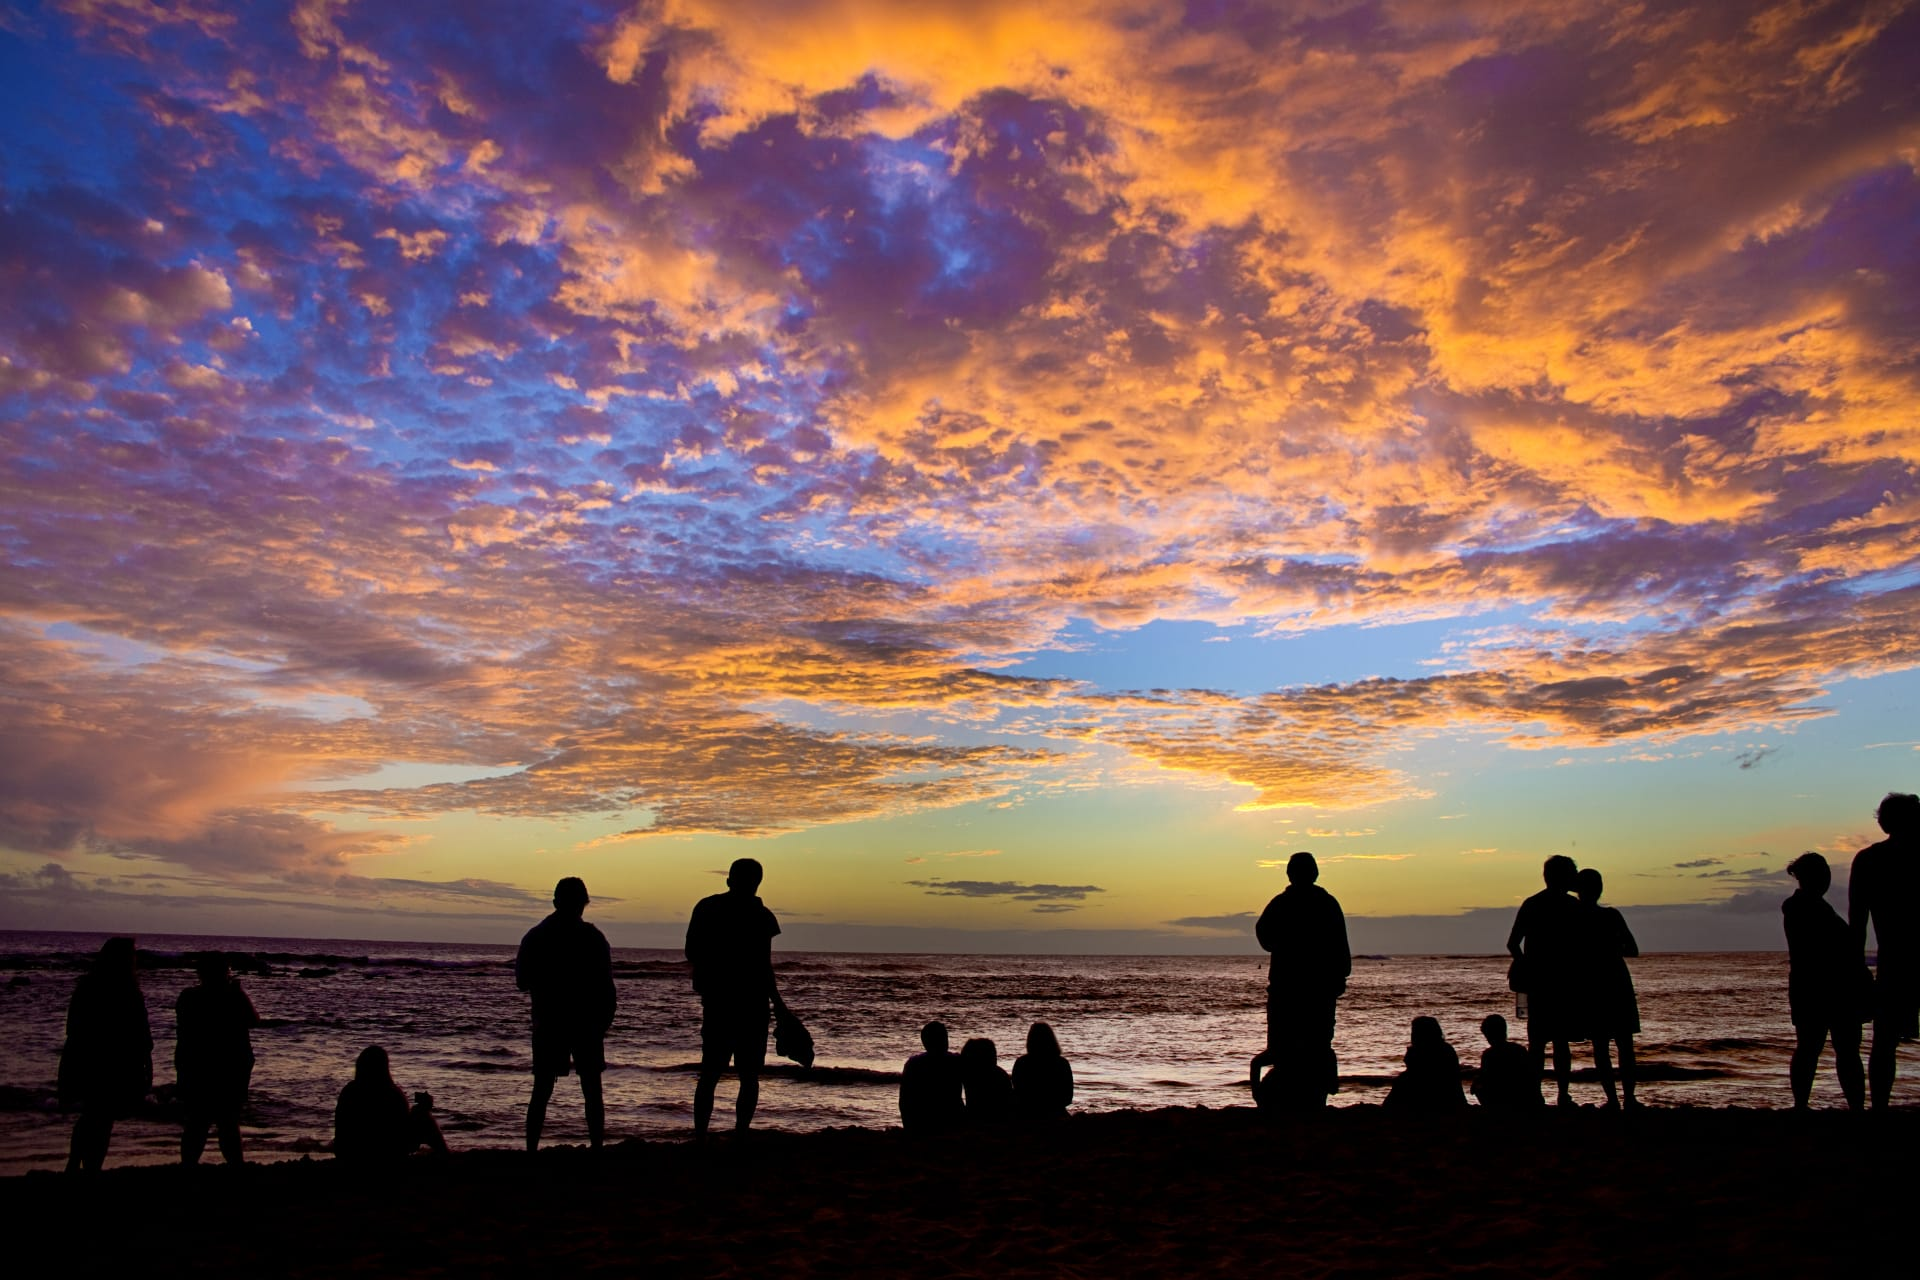 2019 Kauai Tourism Activity by the Numbers